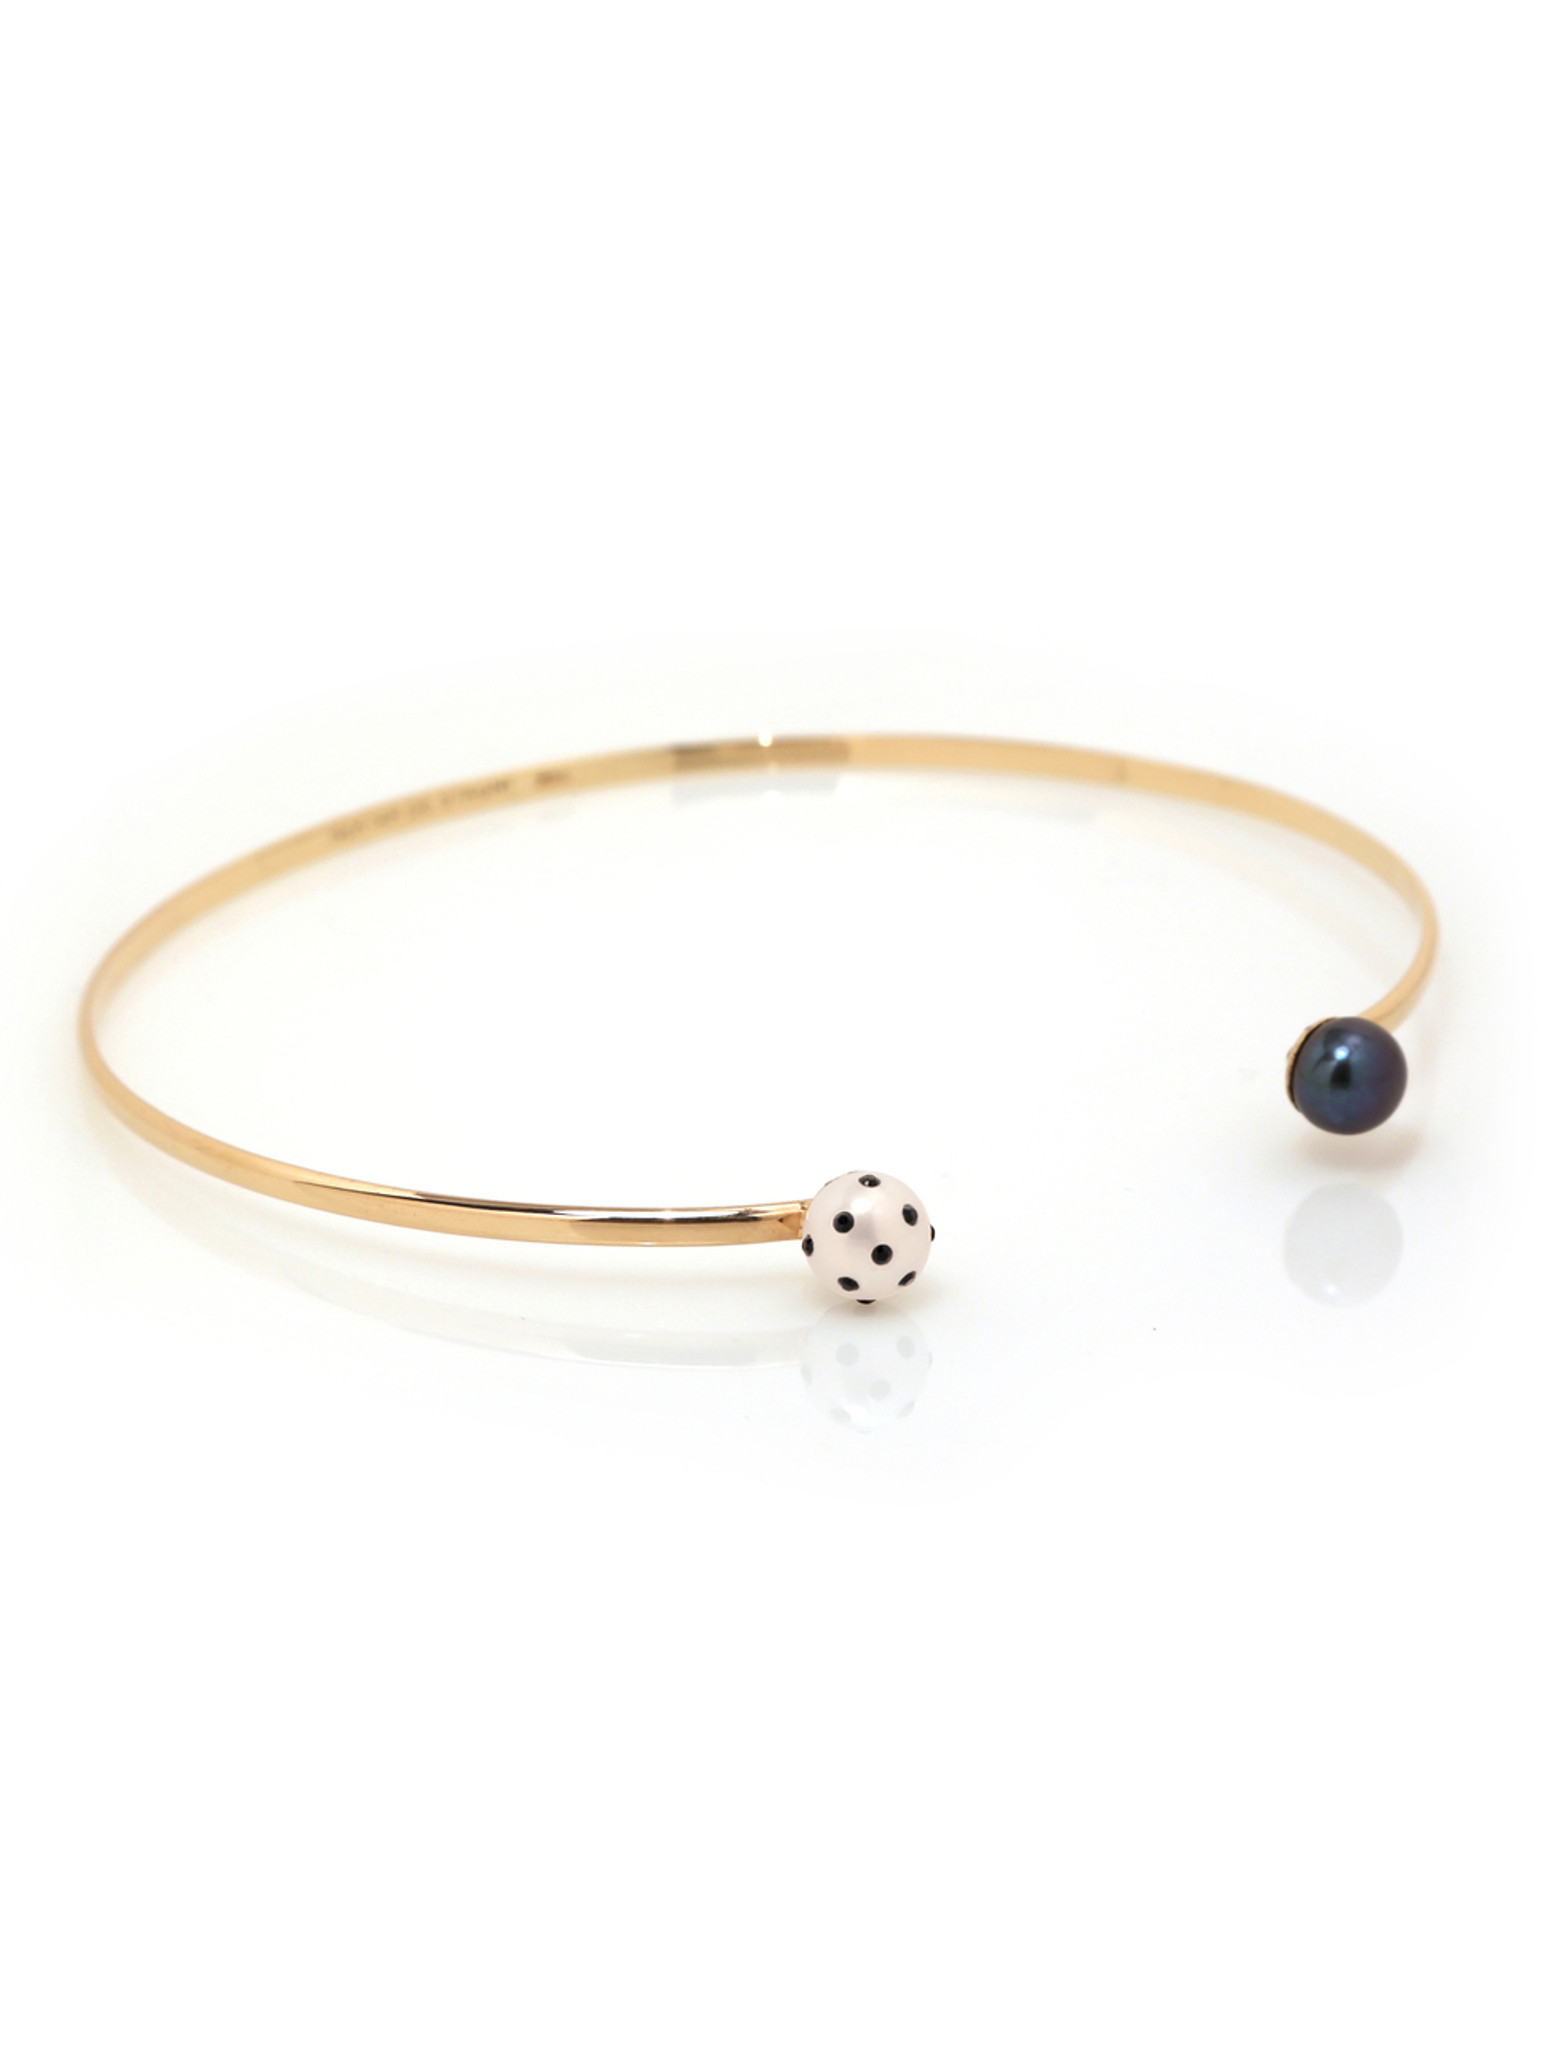 LadyBug Diamond & Black Pearl Choker by Nektar De Stagni